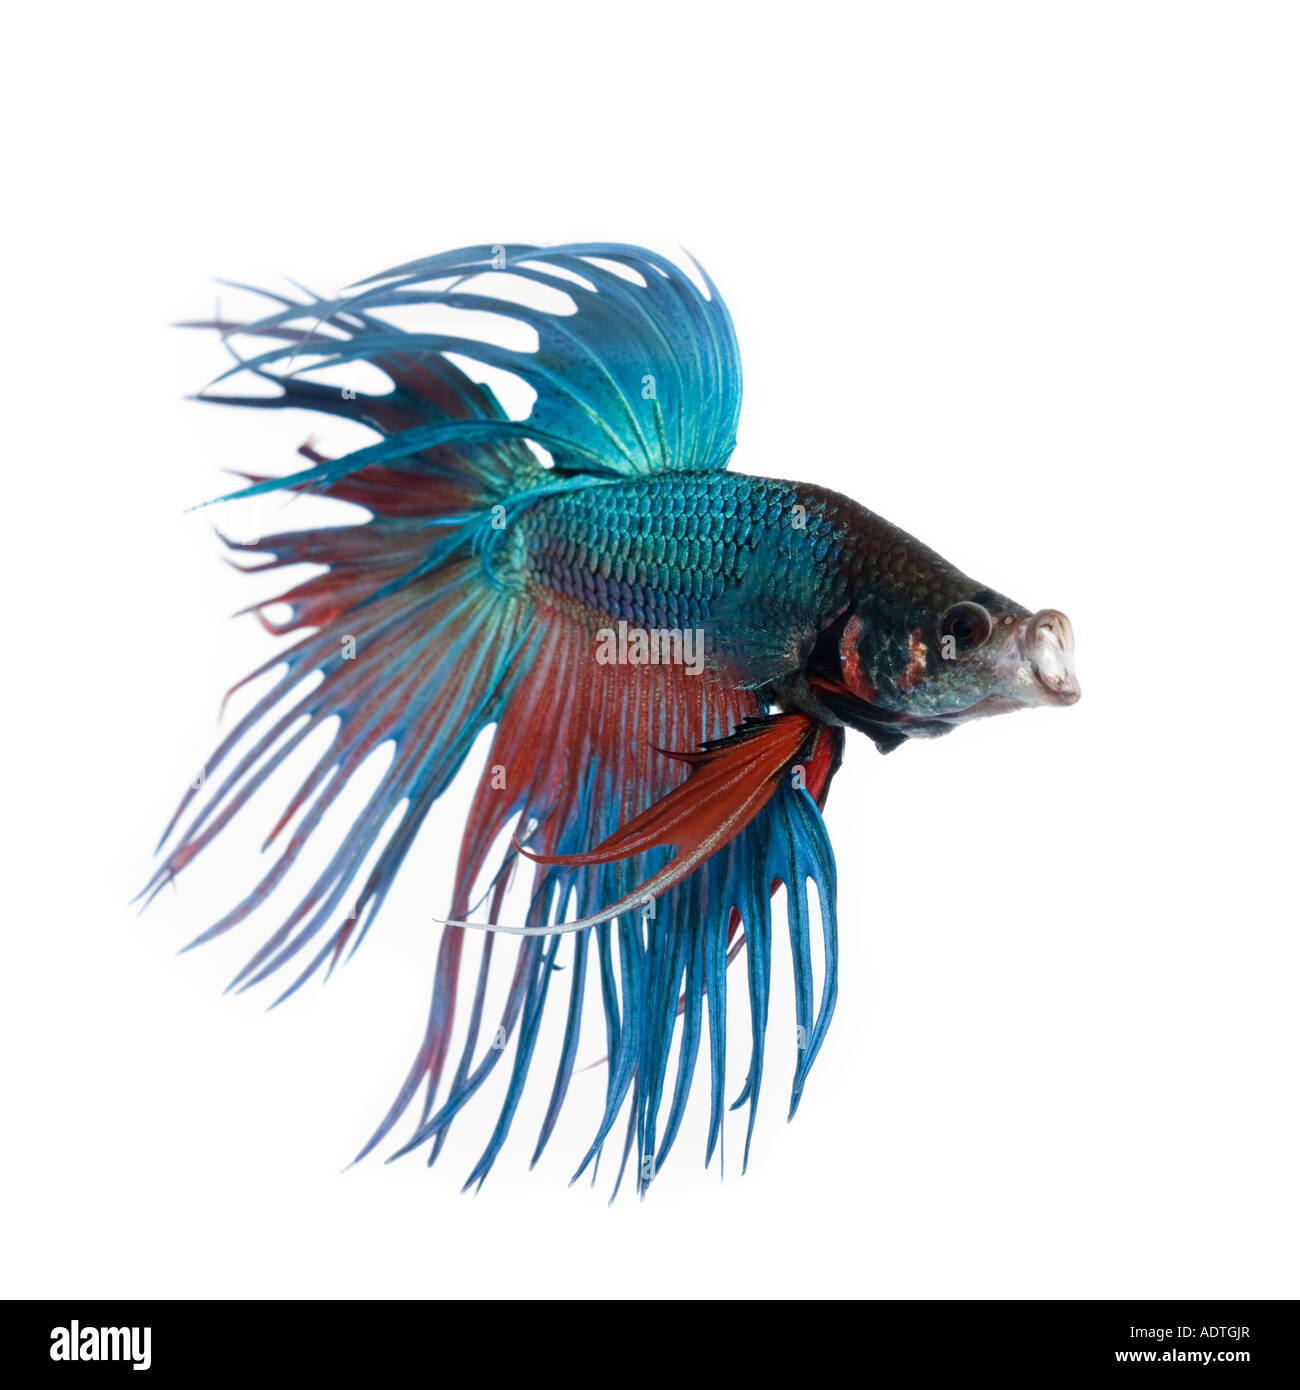 Betta Fins Pictures Turquoise And Red Crown Betta Fish Displaying